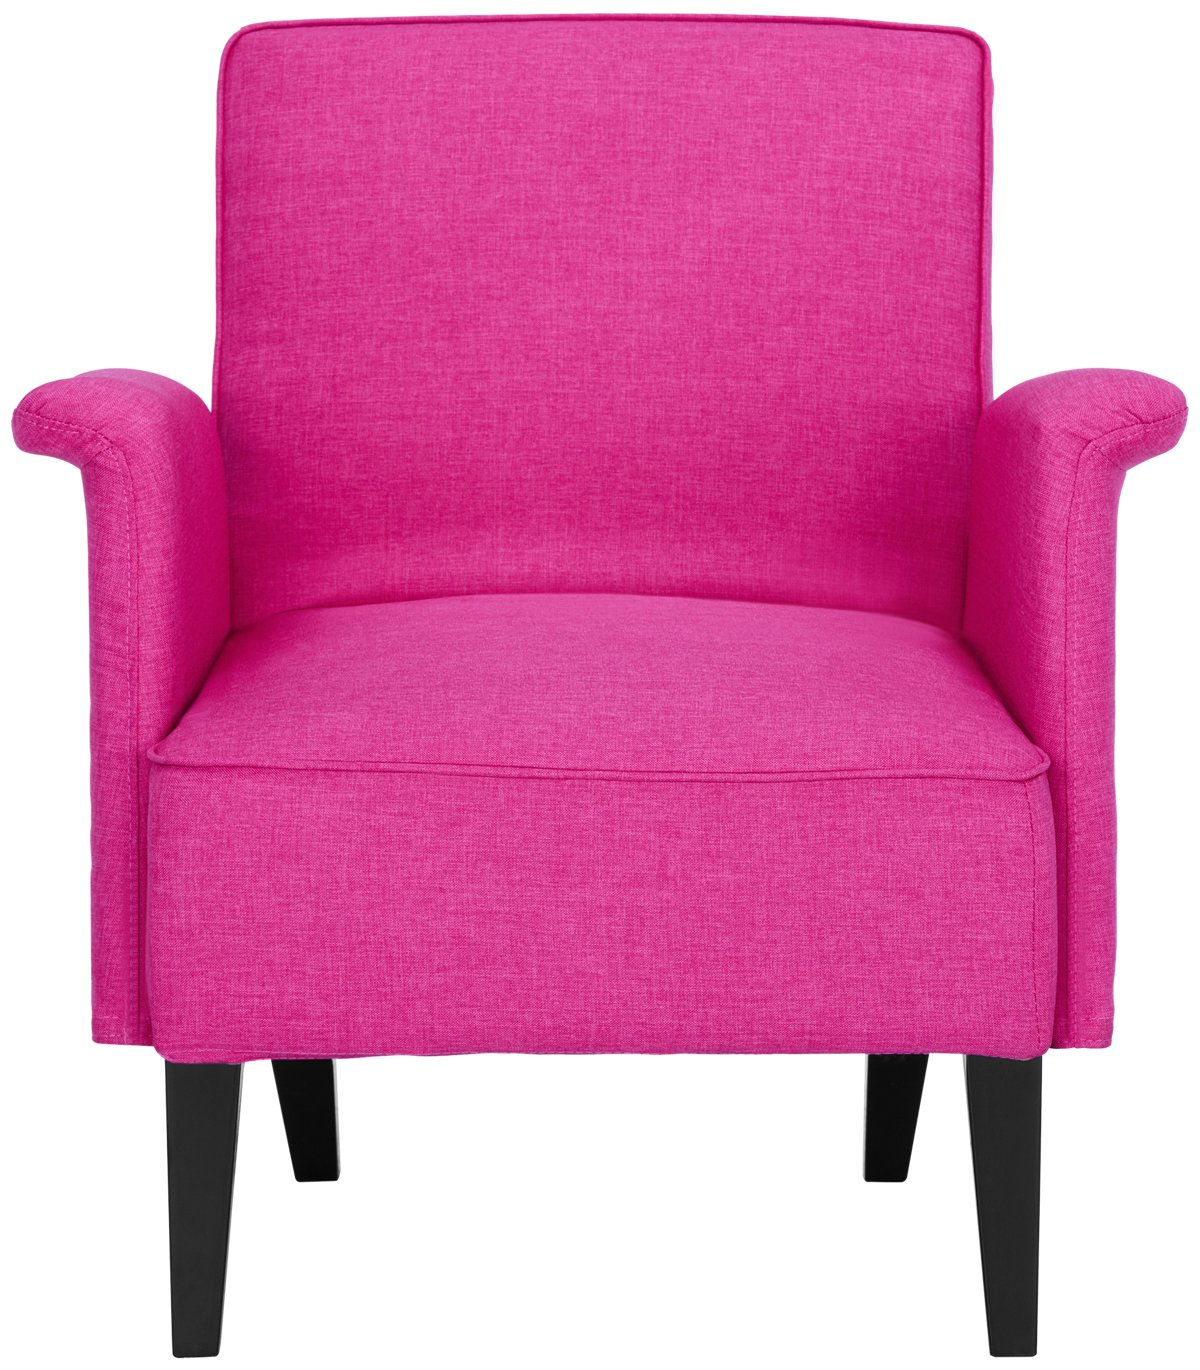 city furniture: nigel pink accent chair